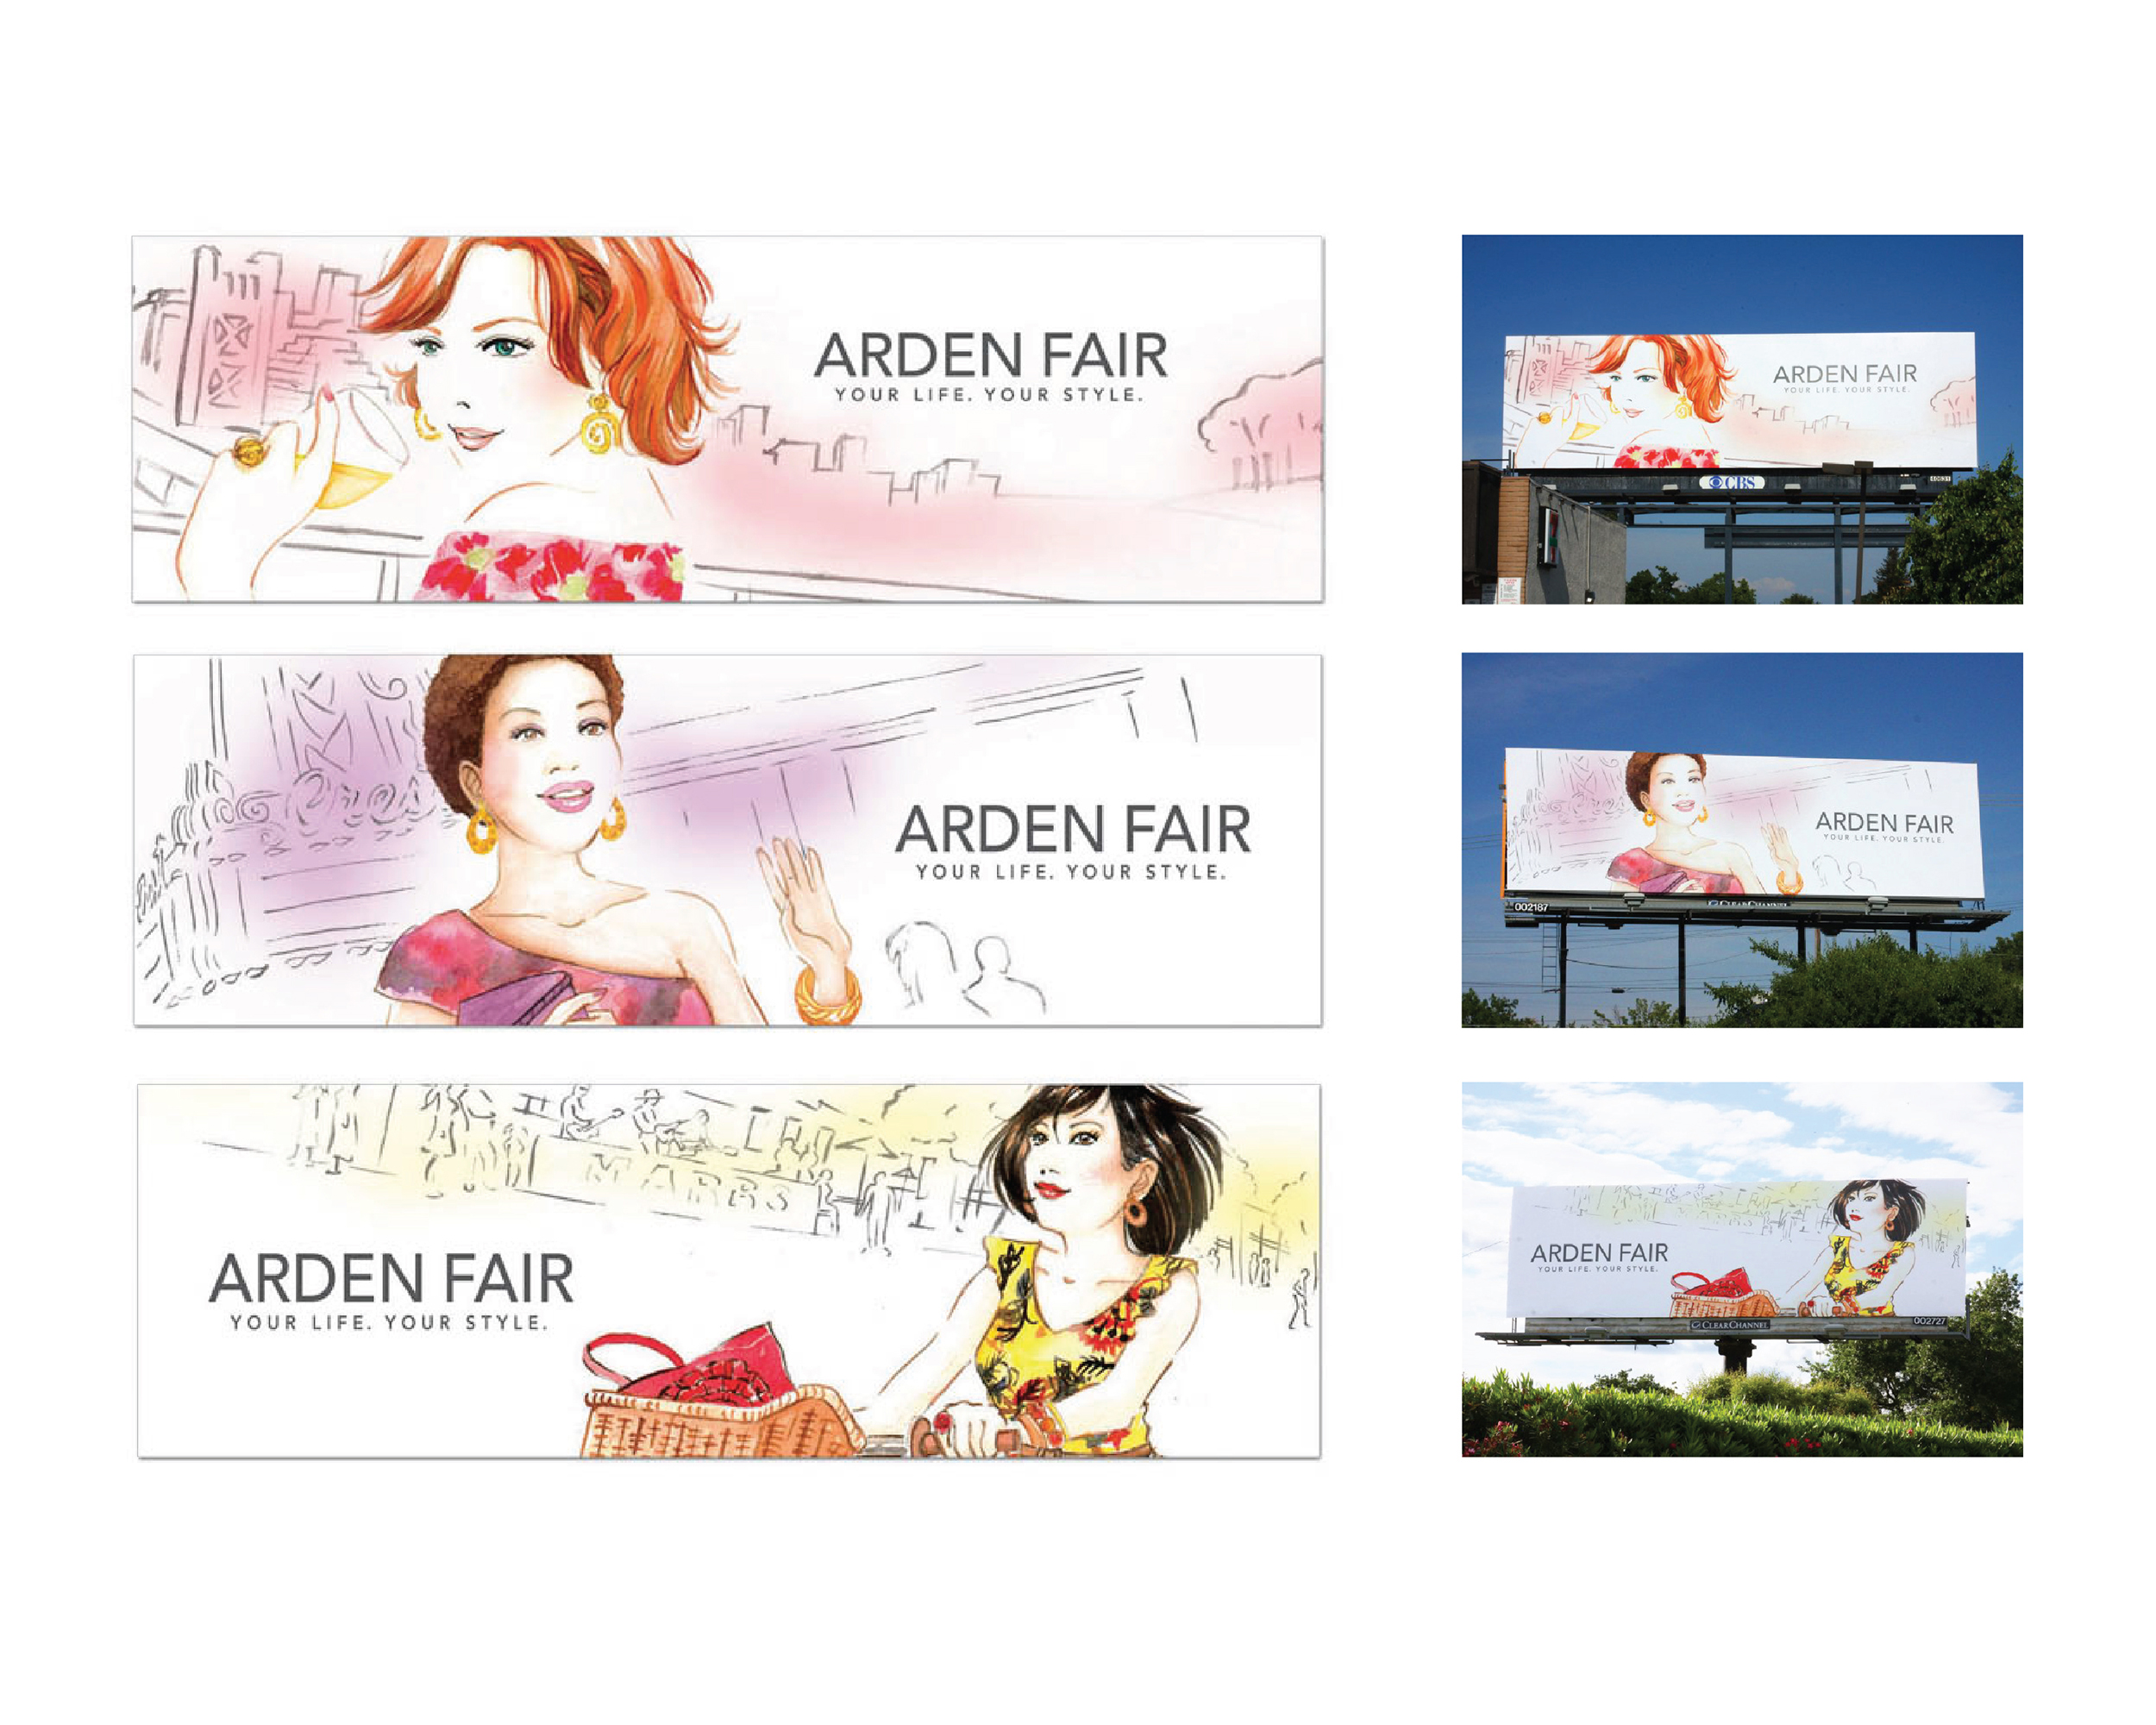 Arden Fair Mall Illustrations and Billboards